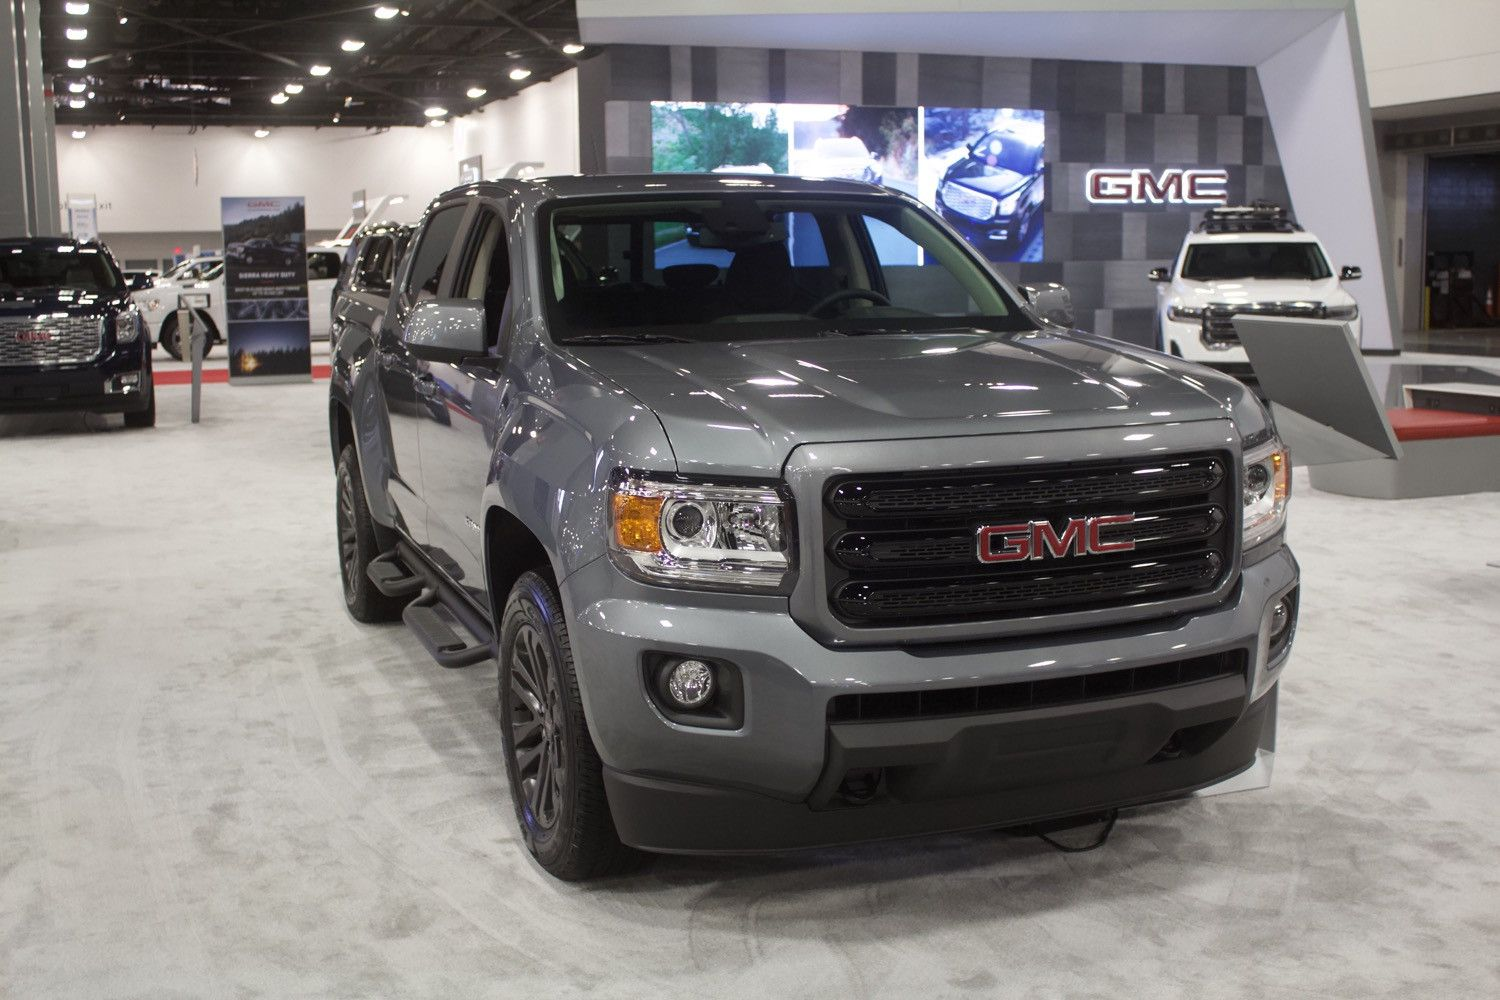 2020 Gmc Canyon Redesign Spesification in 2020 Gmc